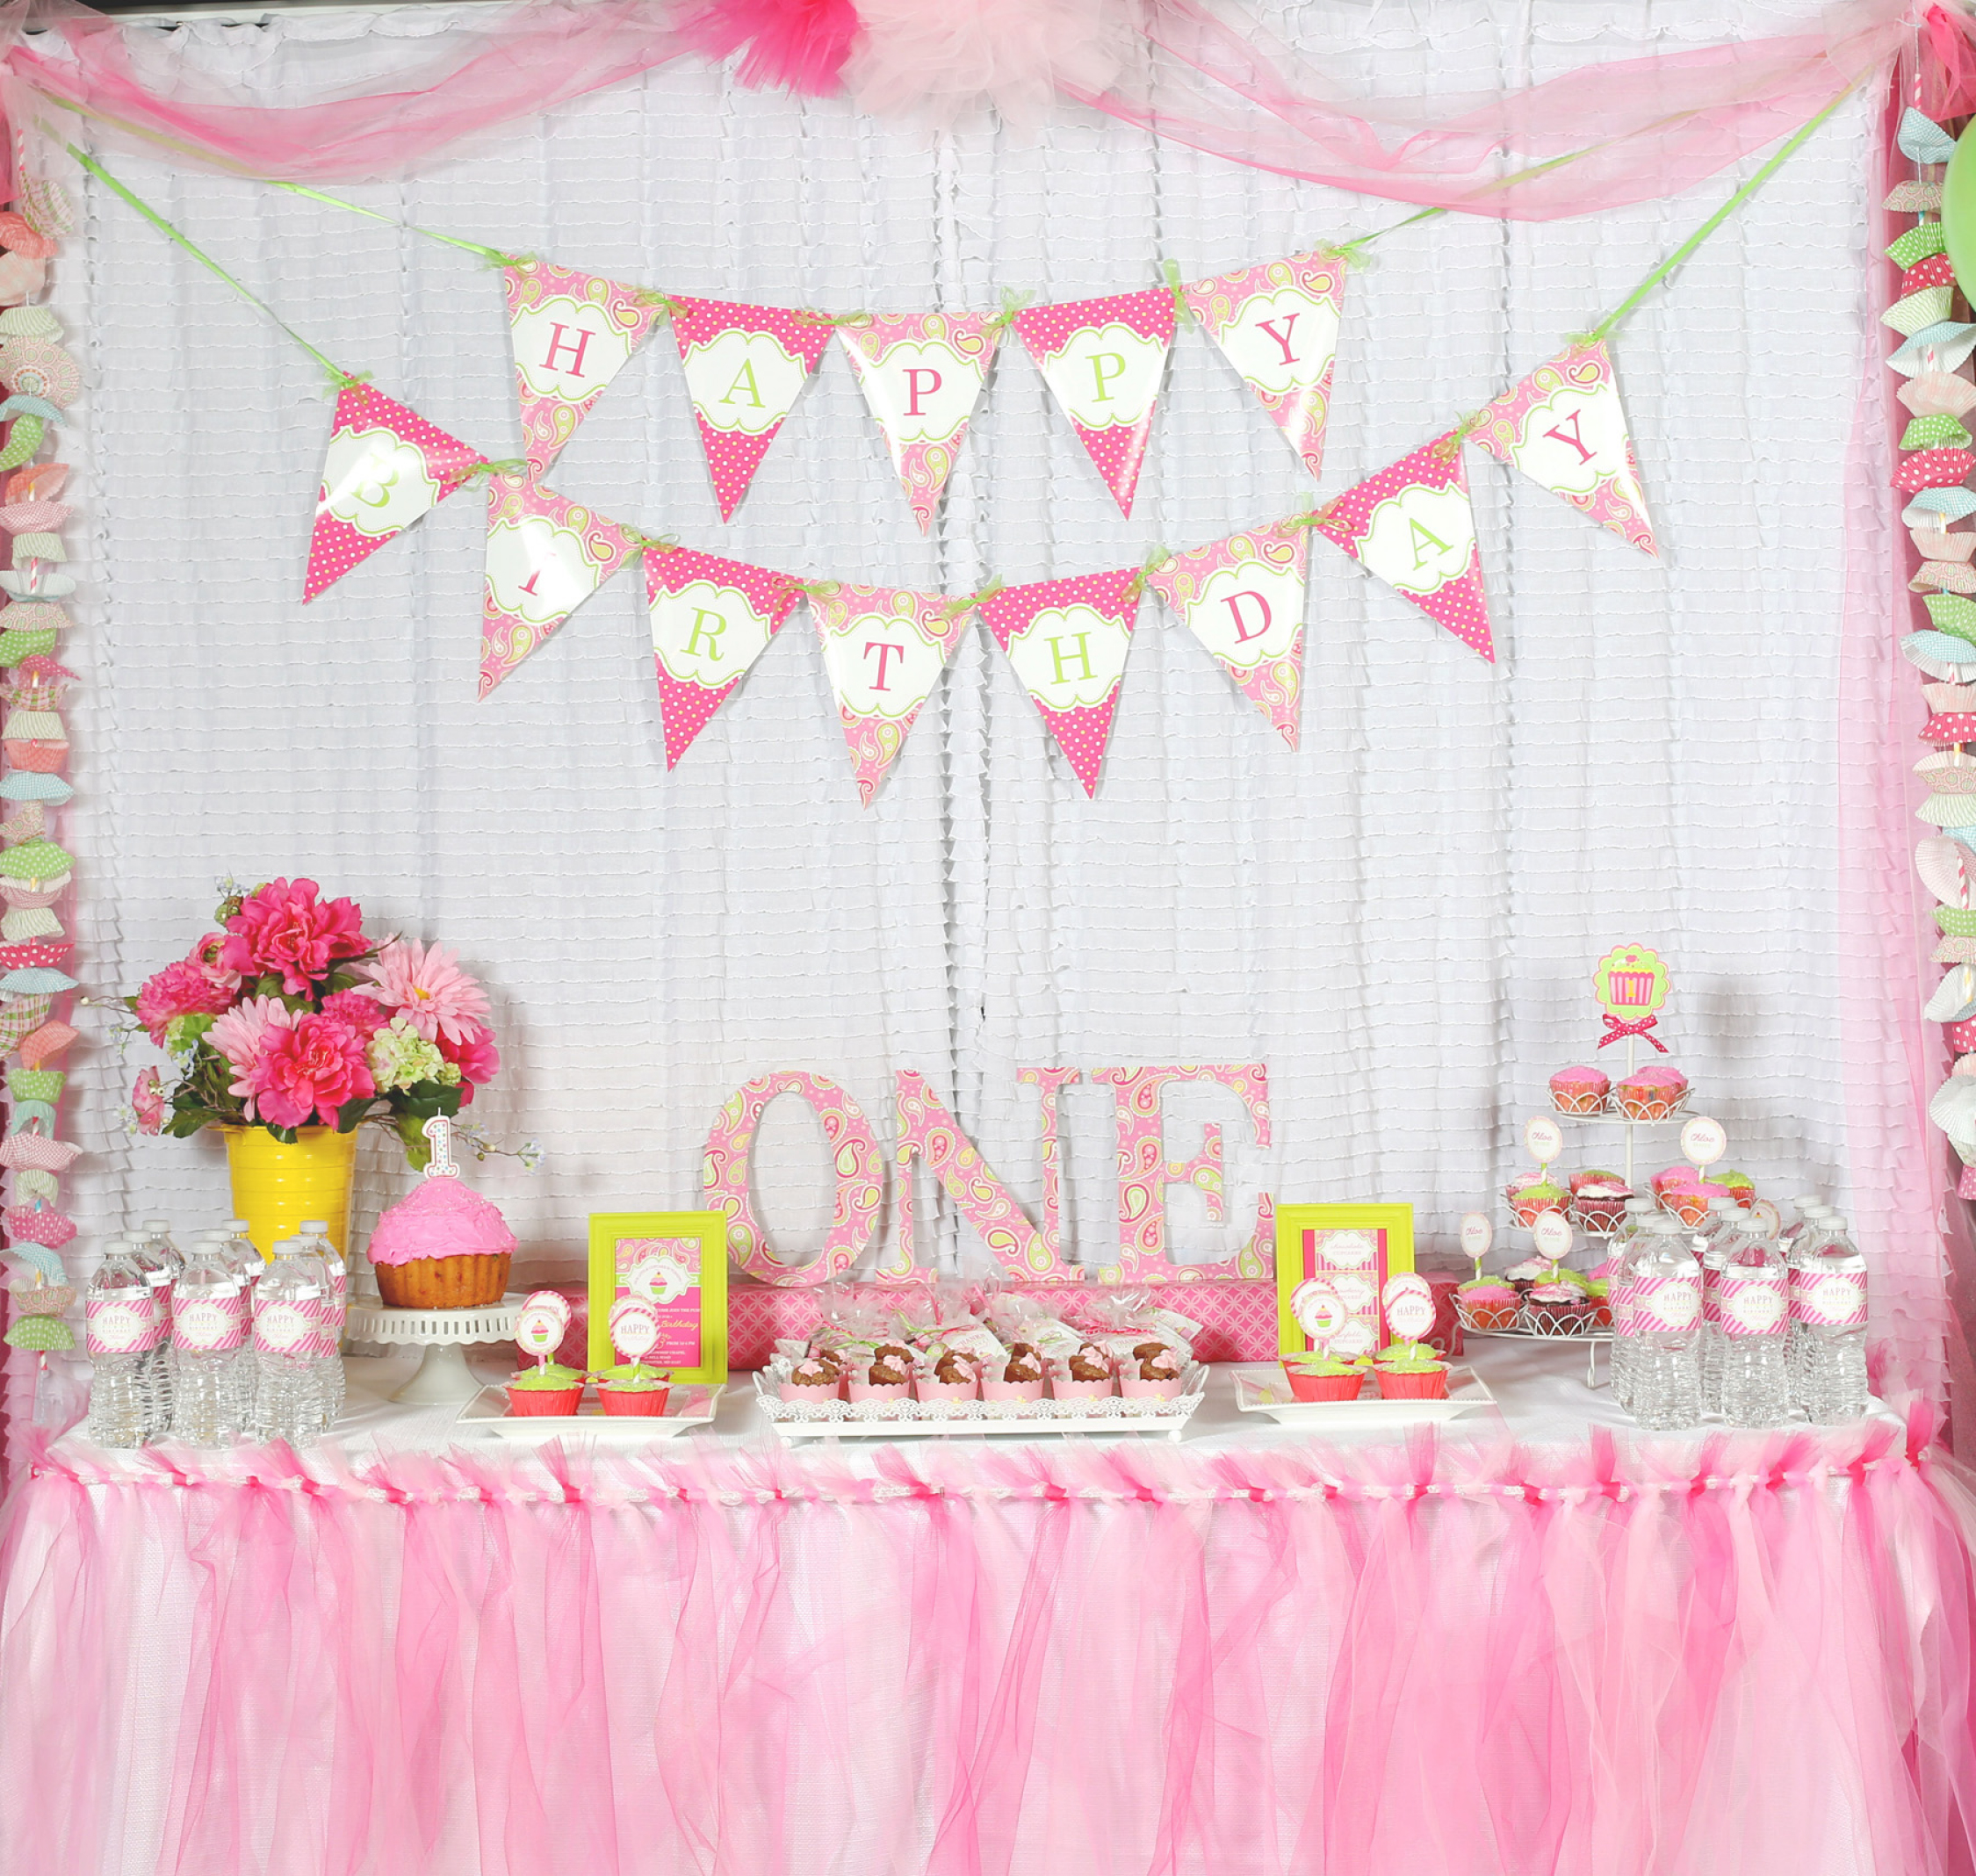 1st Birthday Decoration Themes Of A Cupcake Themed 1st Birthday Party With Paisley And Polka